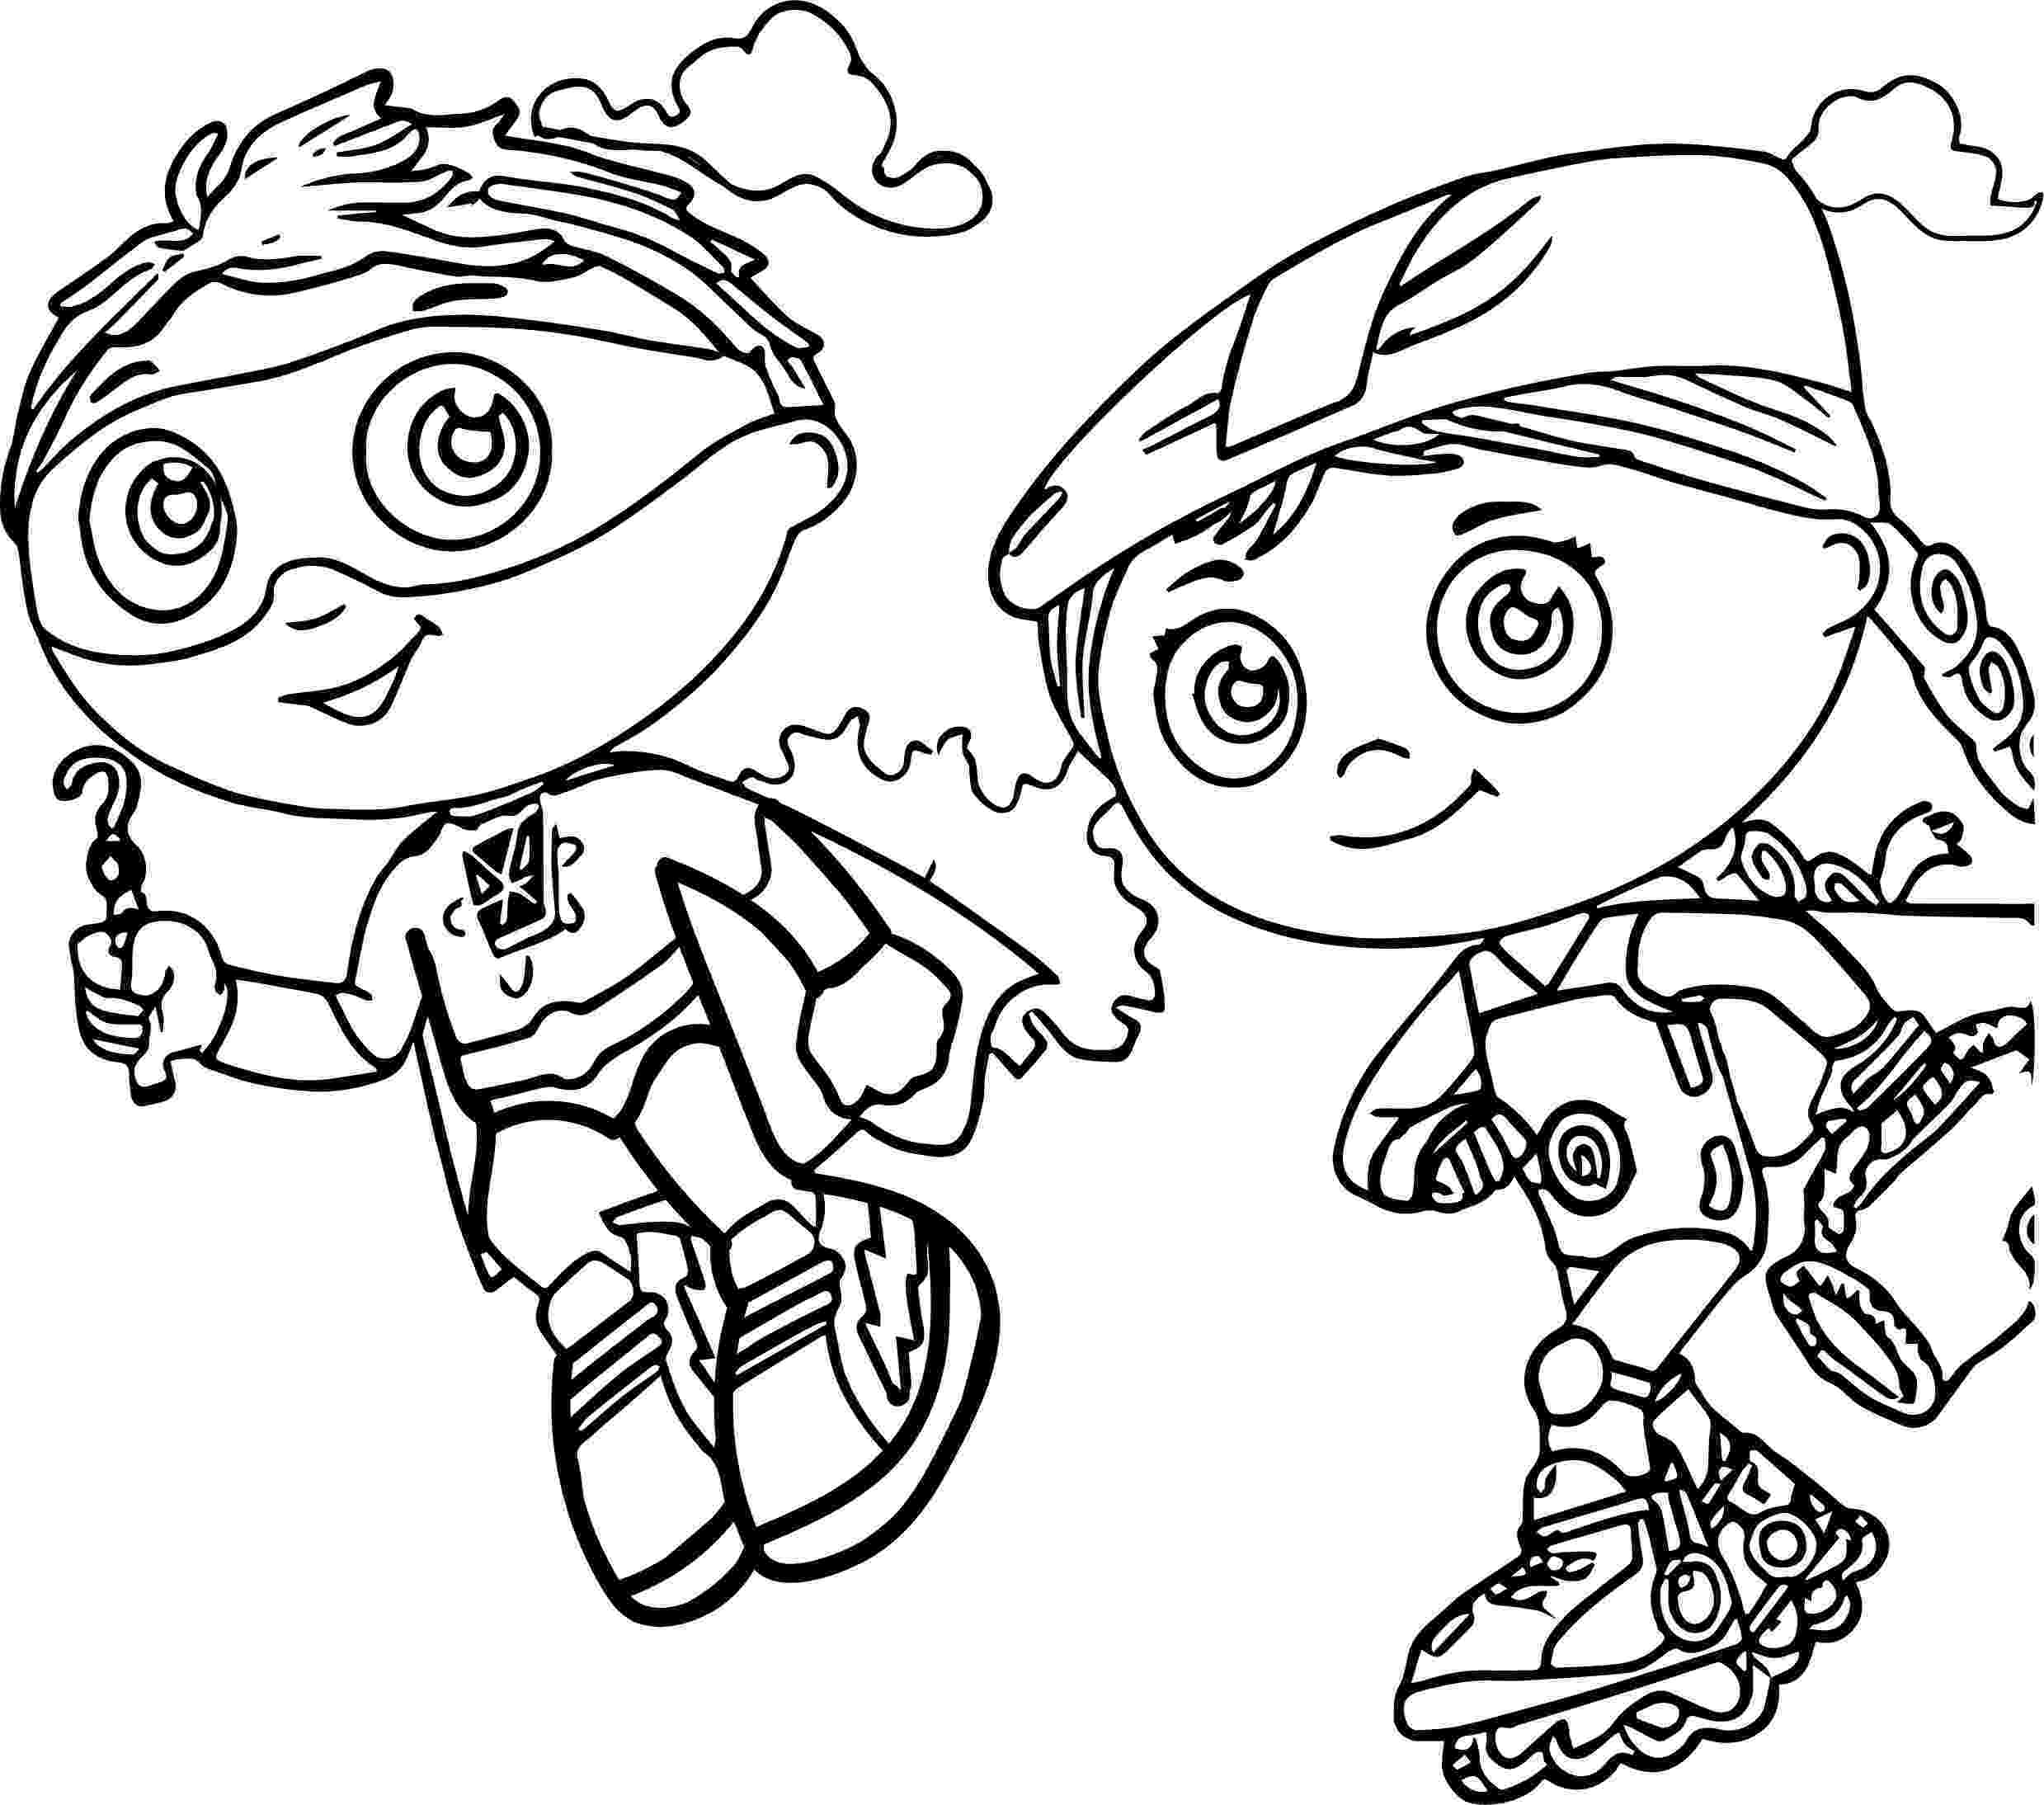 super colouring pages super why coloring pages best coloring pages for kids colouring pages super